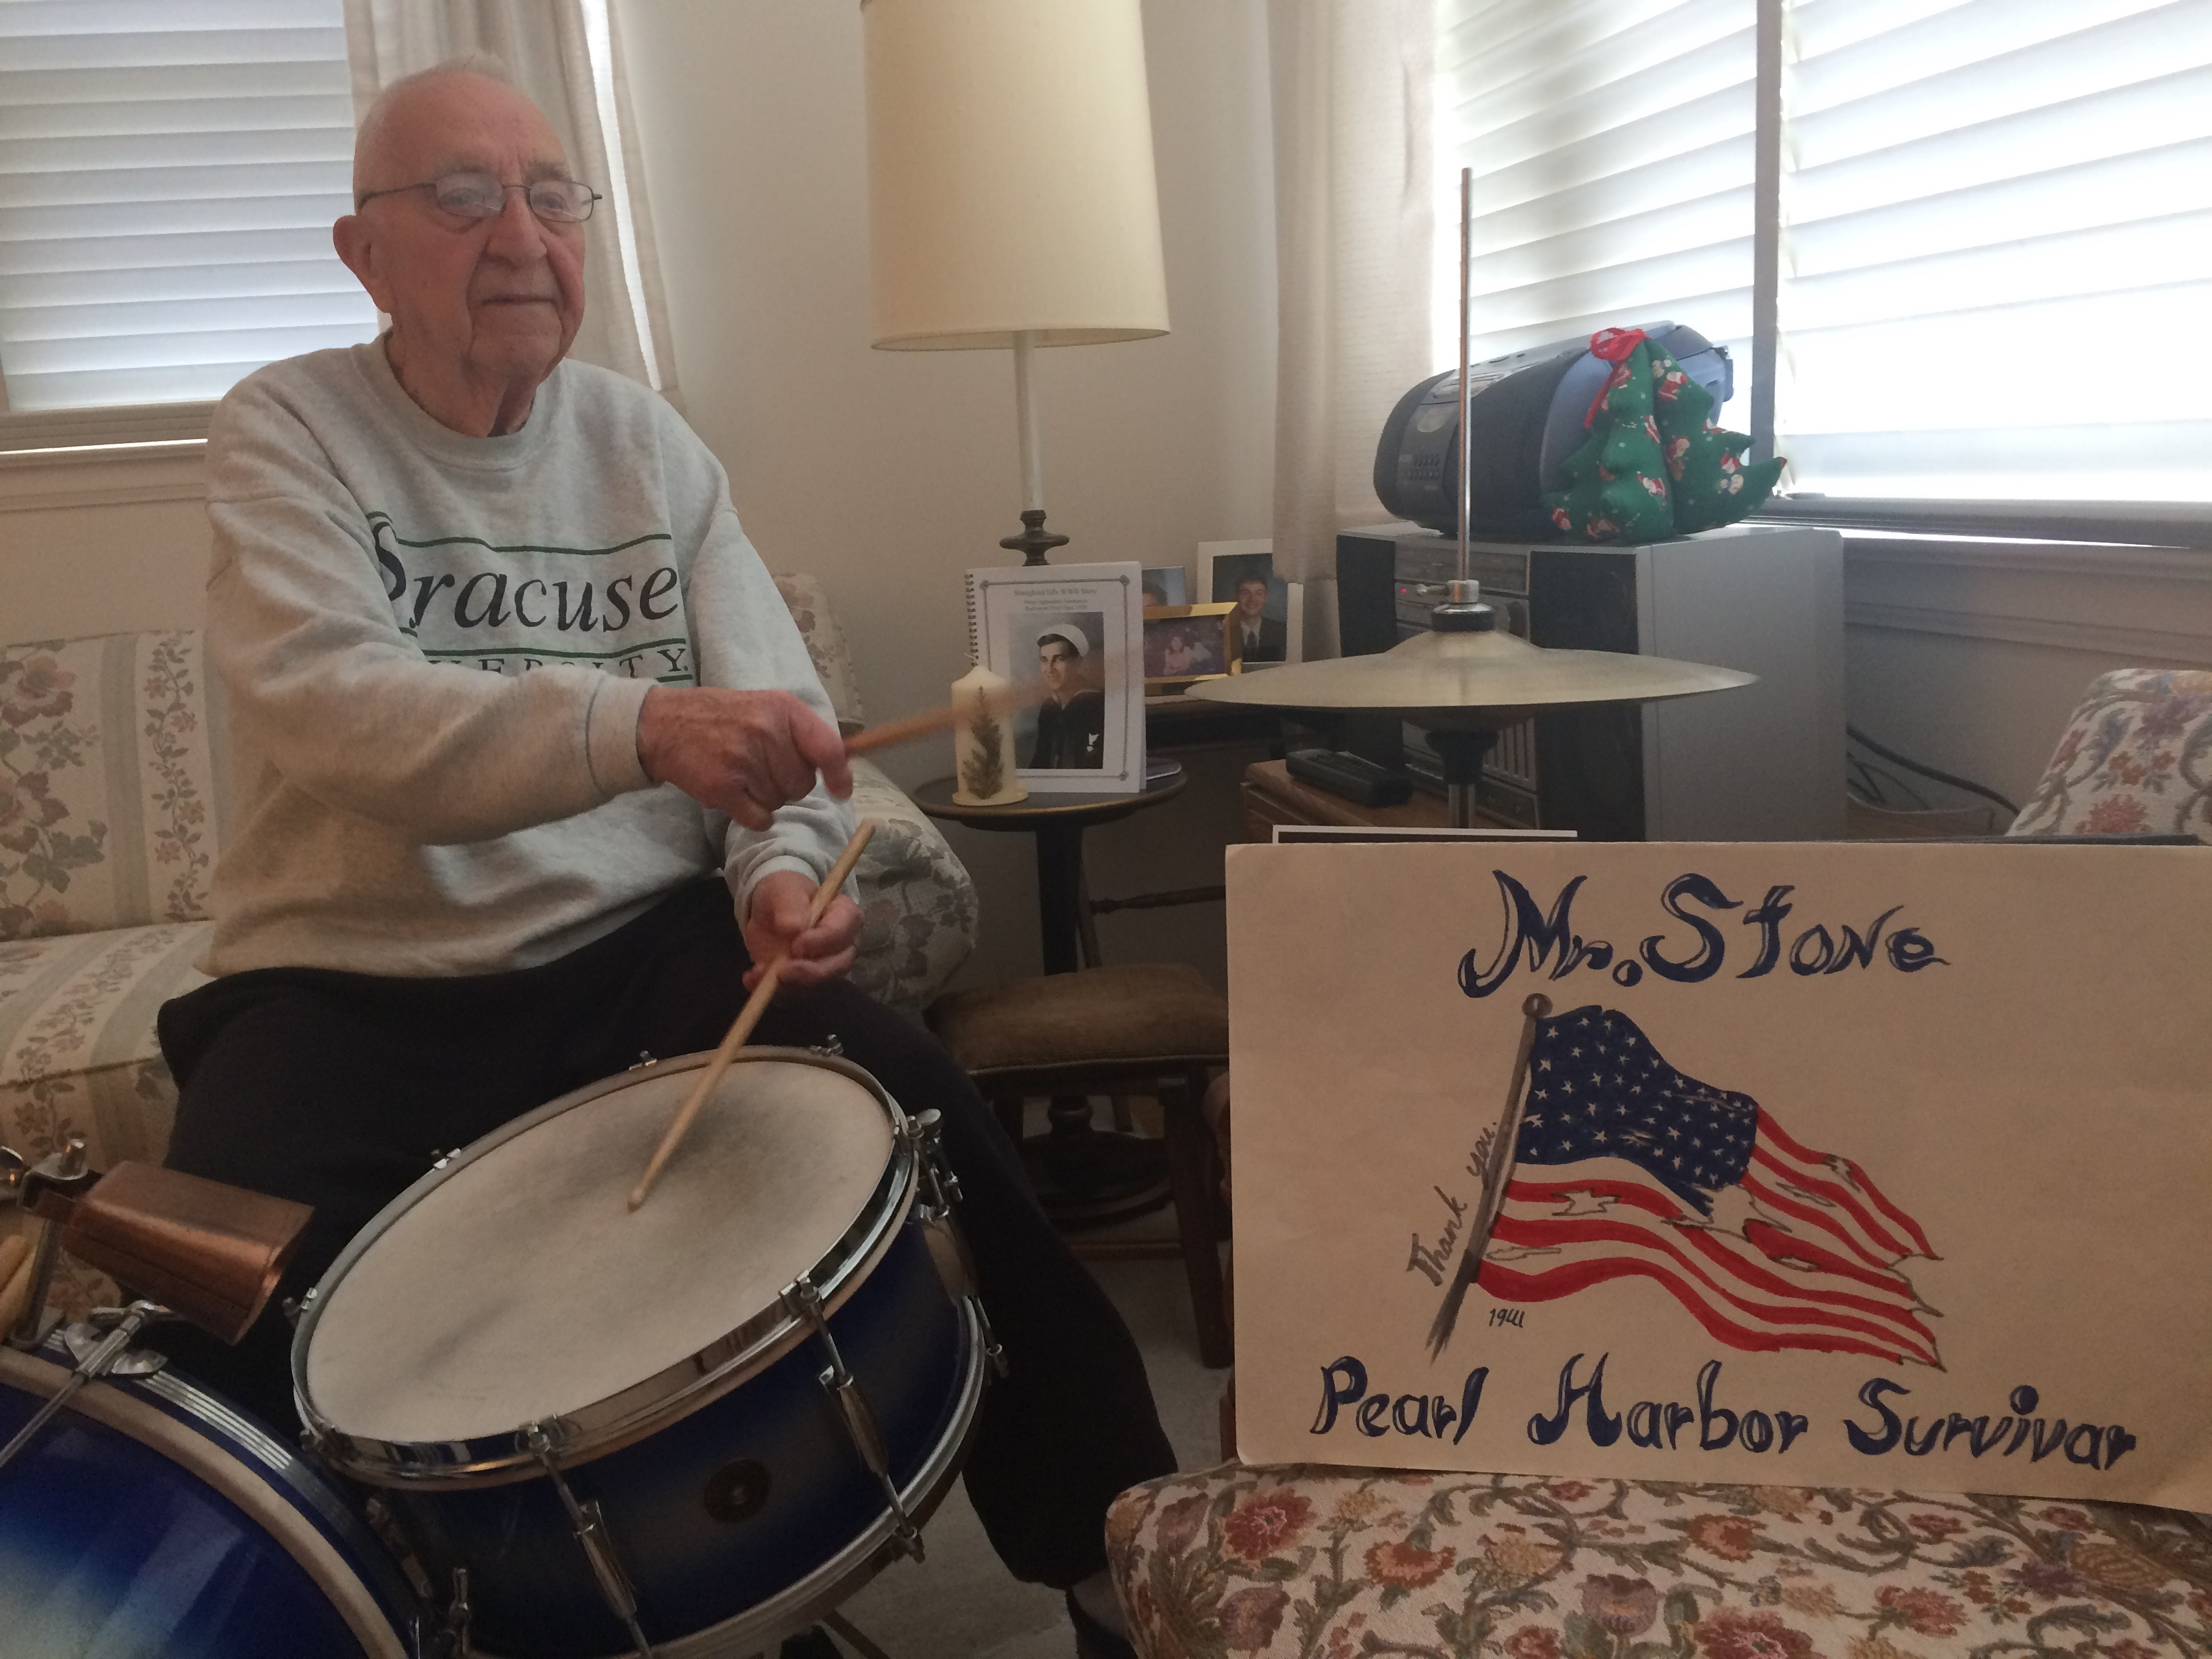 When Ed Stone can't sleep, the 93-year-old Pearl Harbor survivor plays the drums, in his living room. (Sean Kirst)